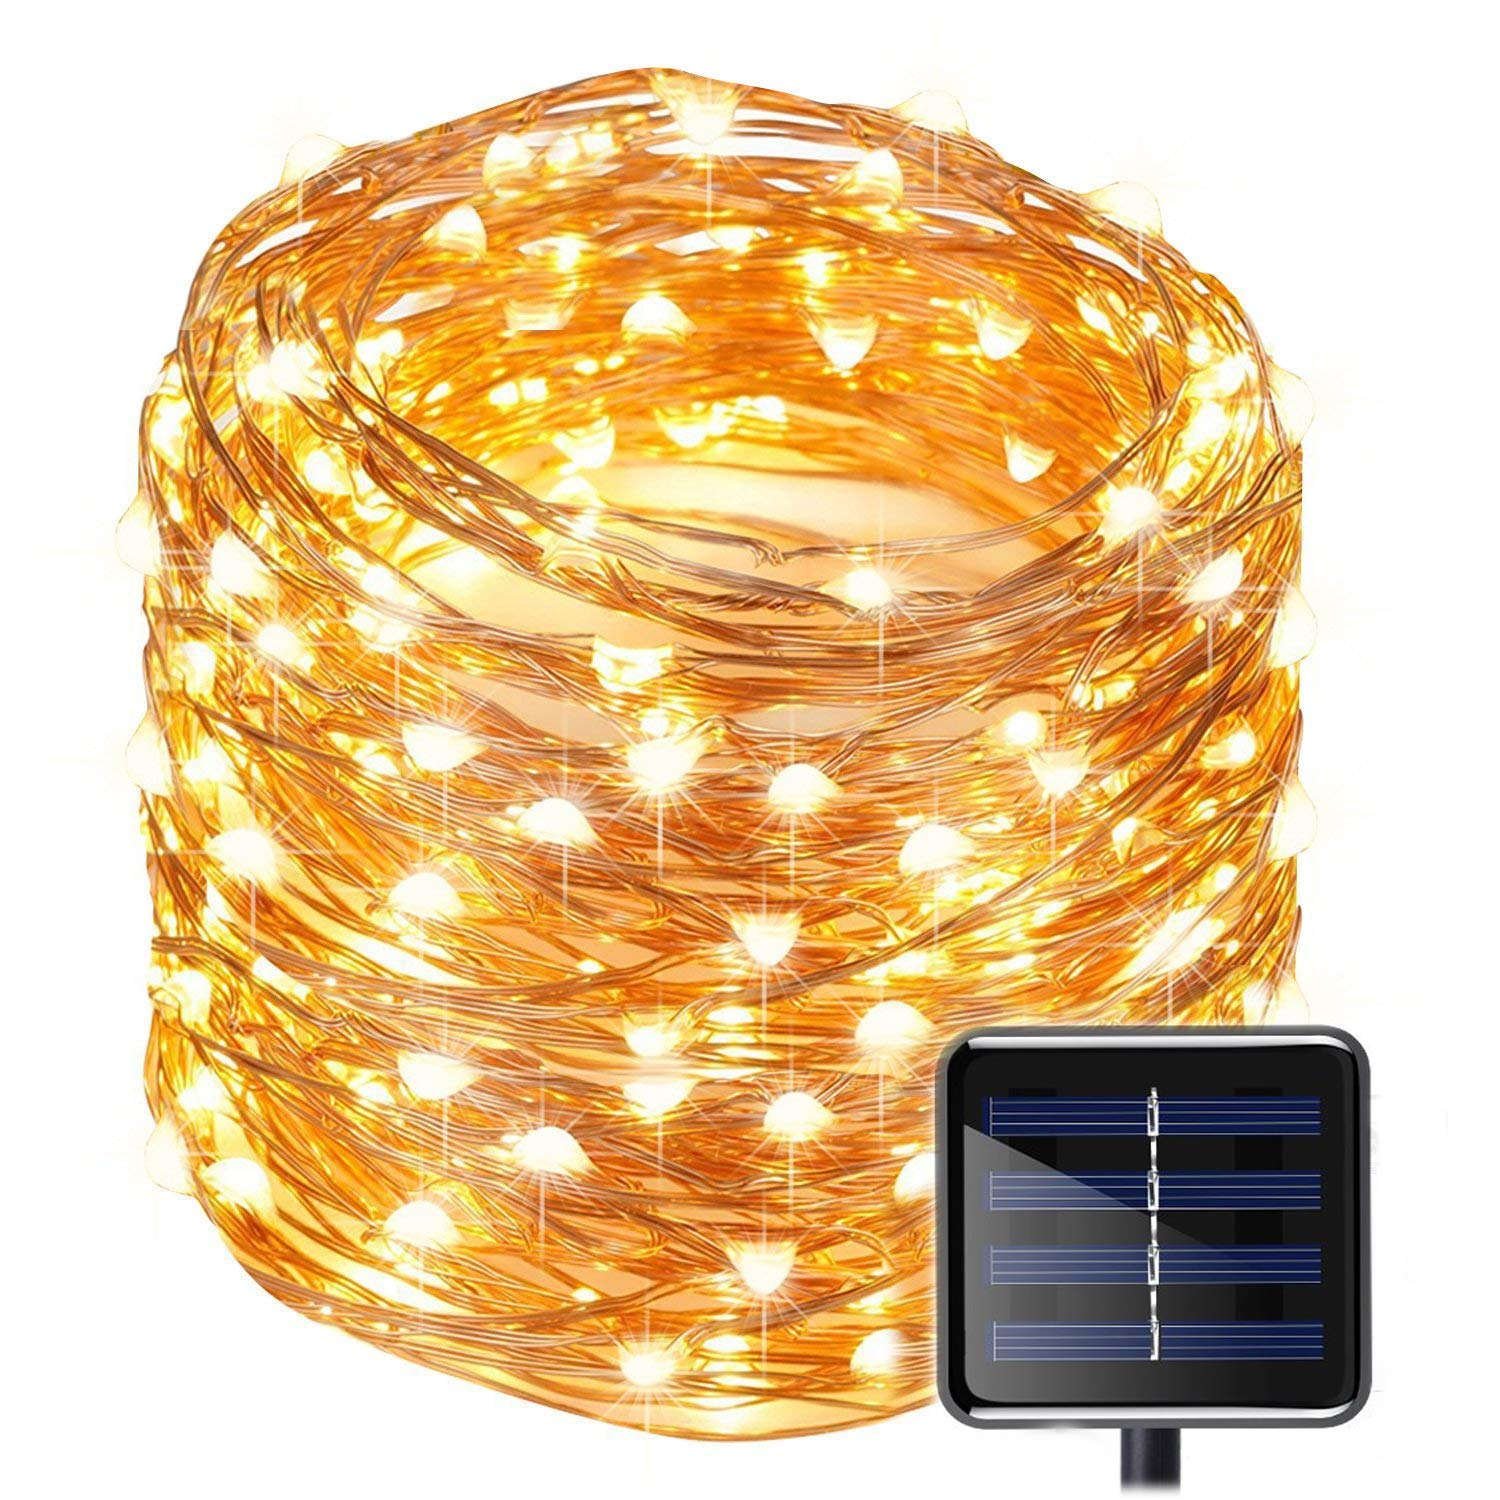 Solar Copper Wire Fairy String Lights 50ft 150LED Starry Strip Lights Waterproof IP65 Solar Christmas Lights Decoration for Garden Outdoor Home Bedroom Holiday Wedding Party Warm White Rope Lights